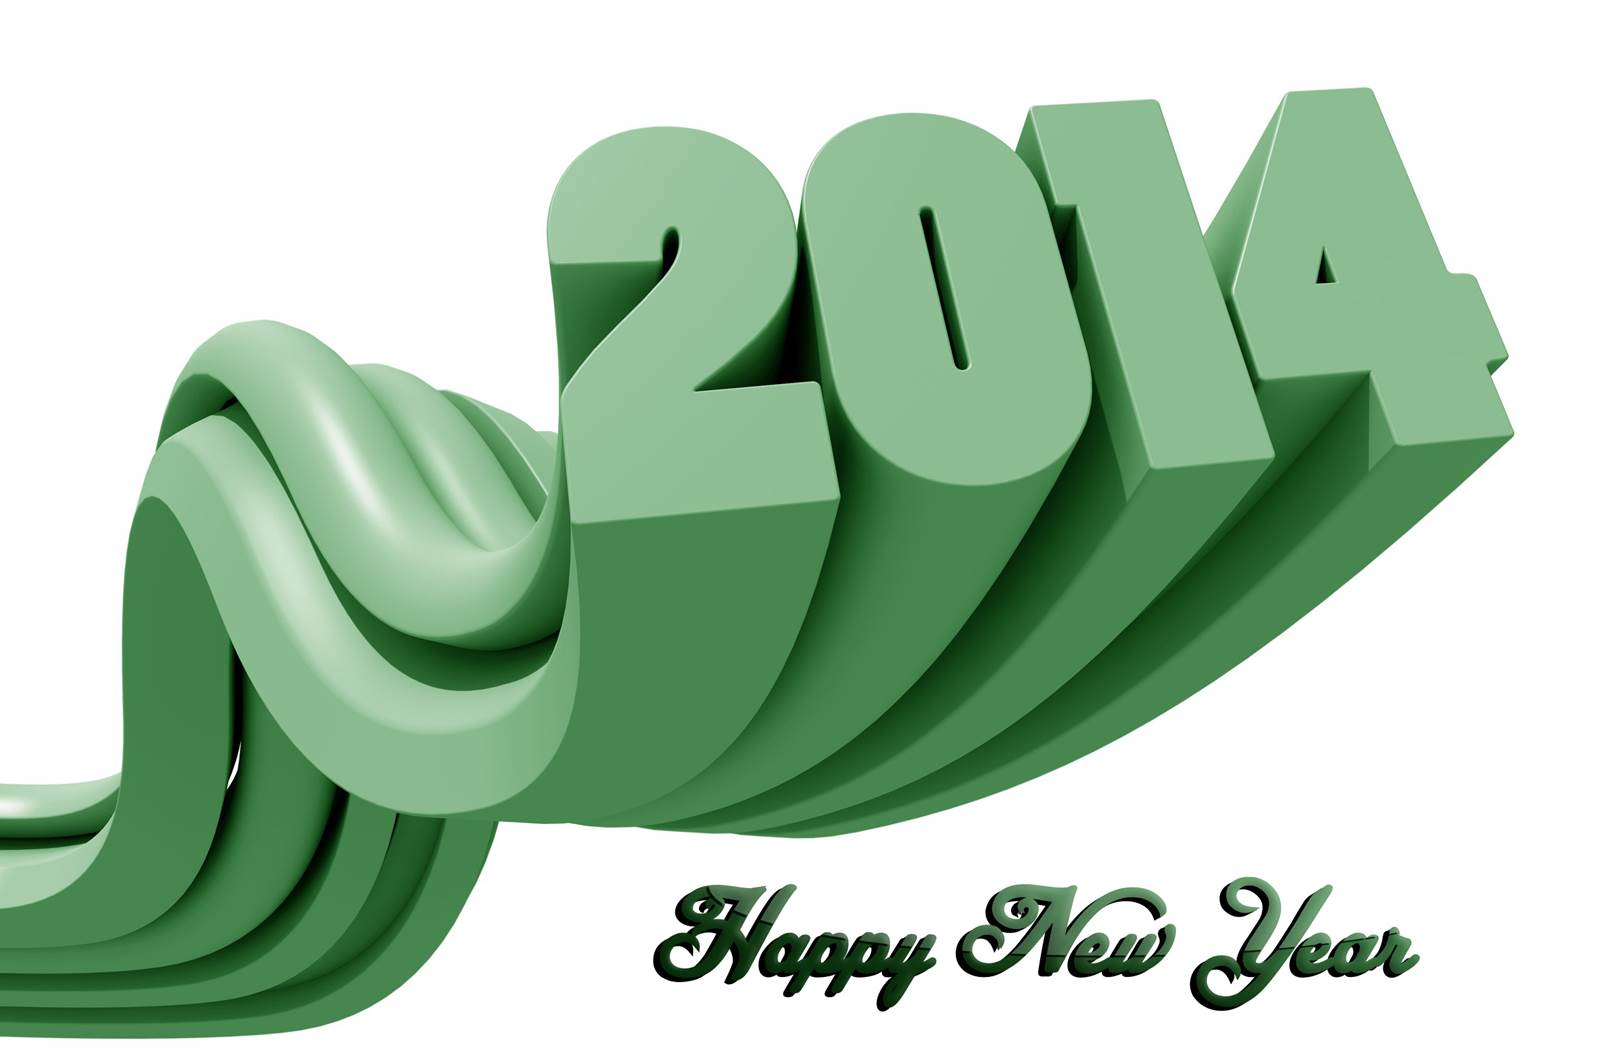 Happy new year 2014 wallpapers greeting cards xcitefun new year 2014 wallpapers and cards image kristyandbryce Images